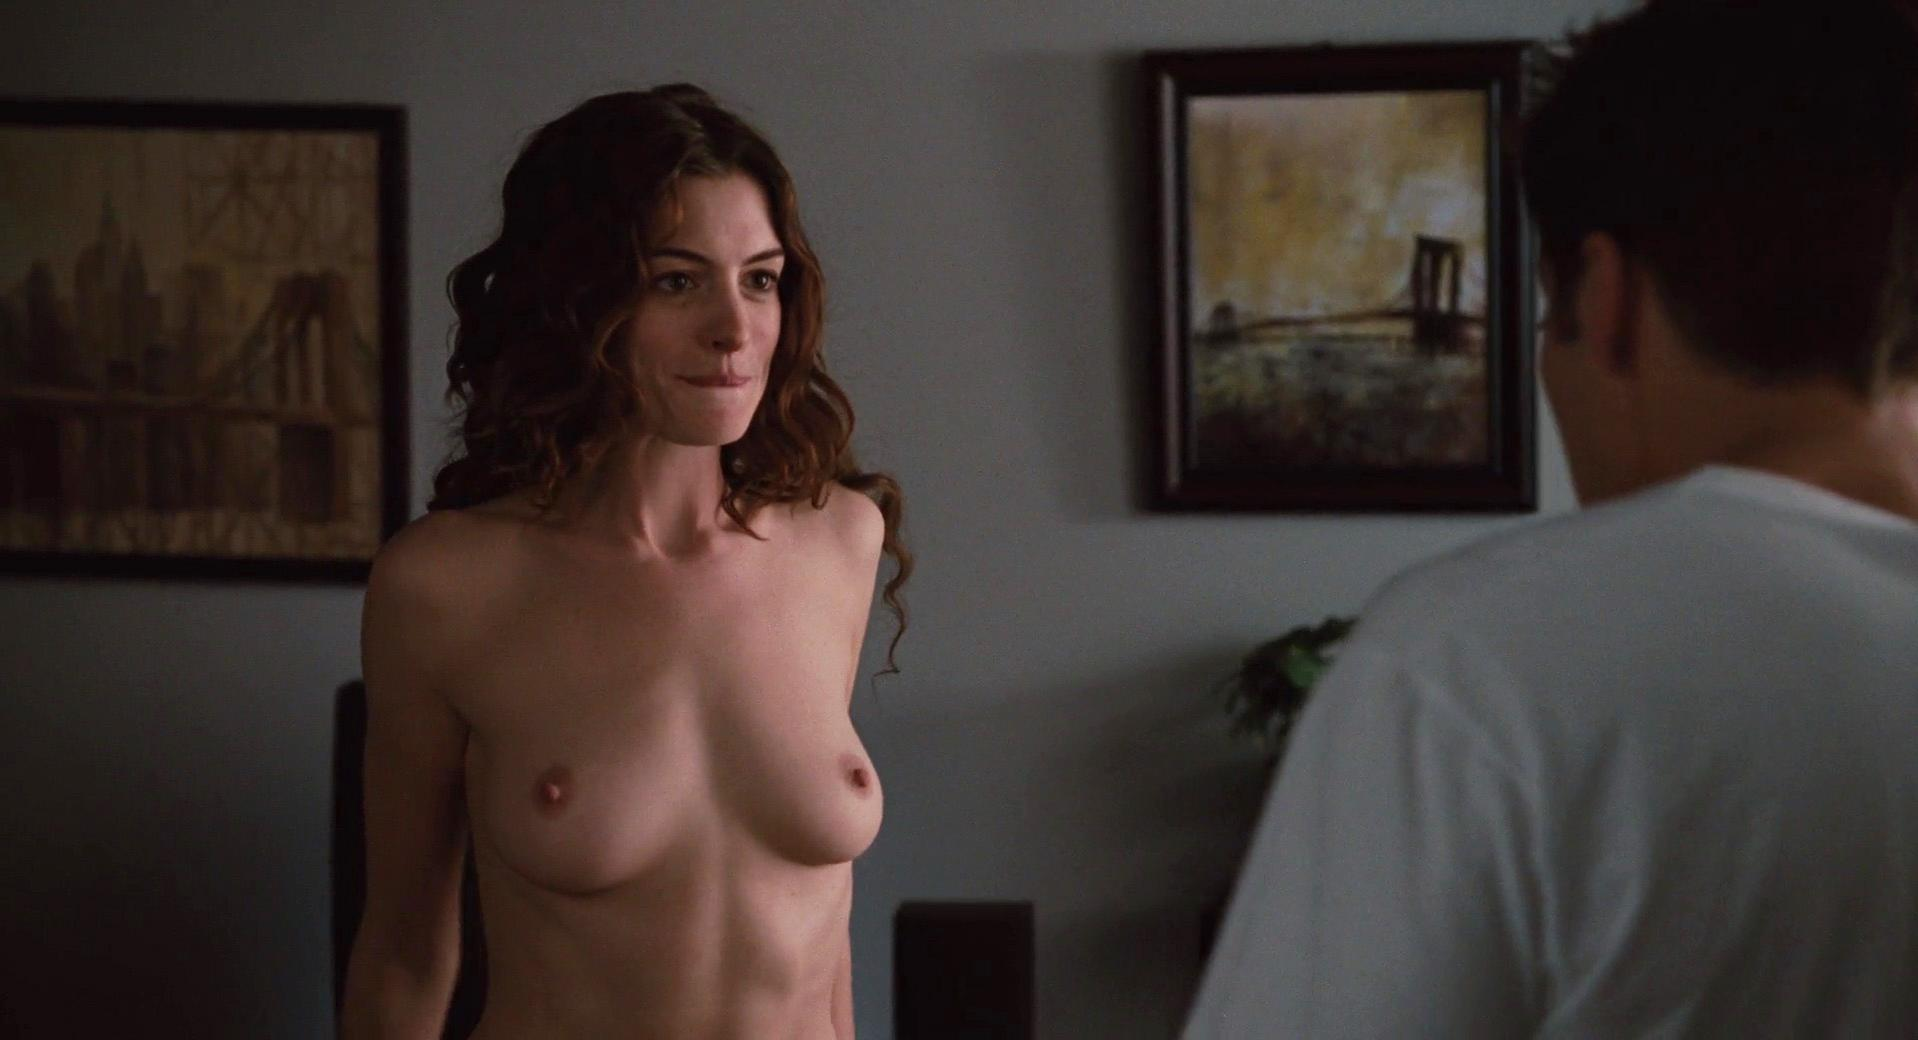 Anne Hathaway nude - Love and Other Drugs (2010)